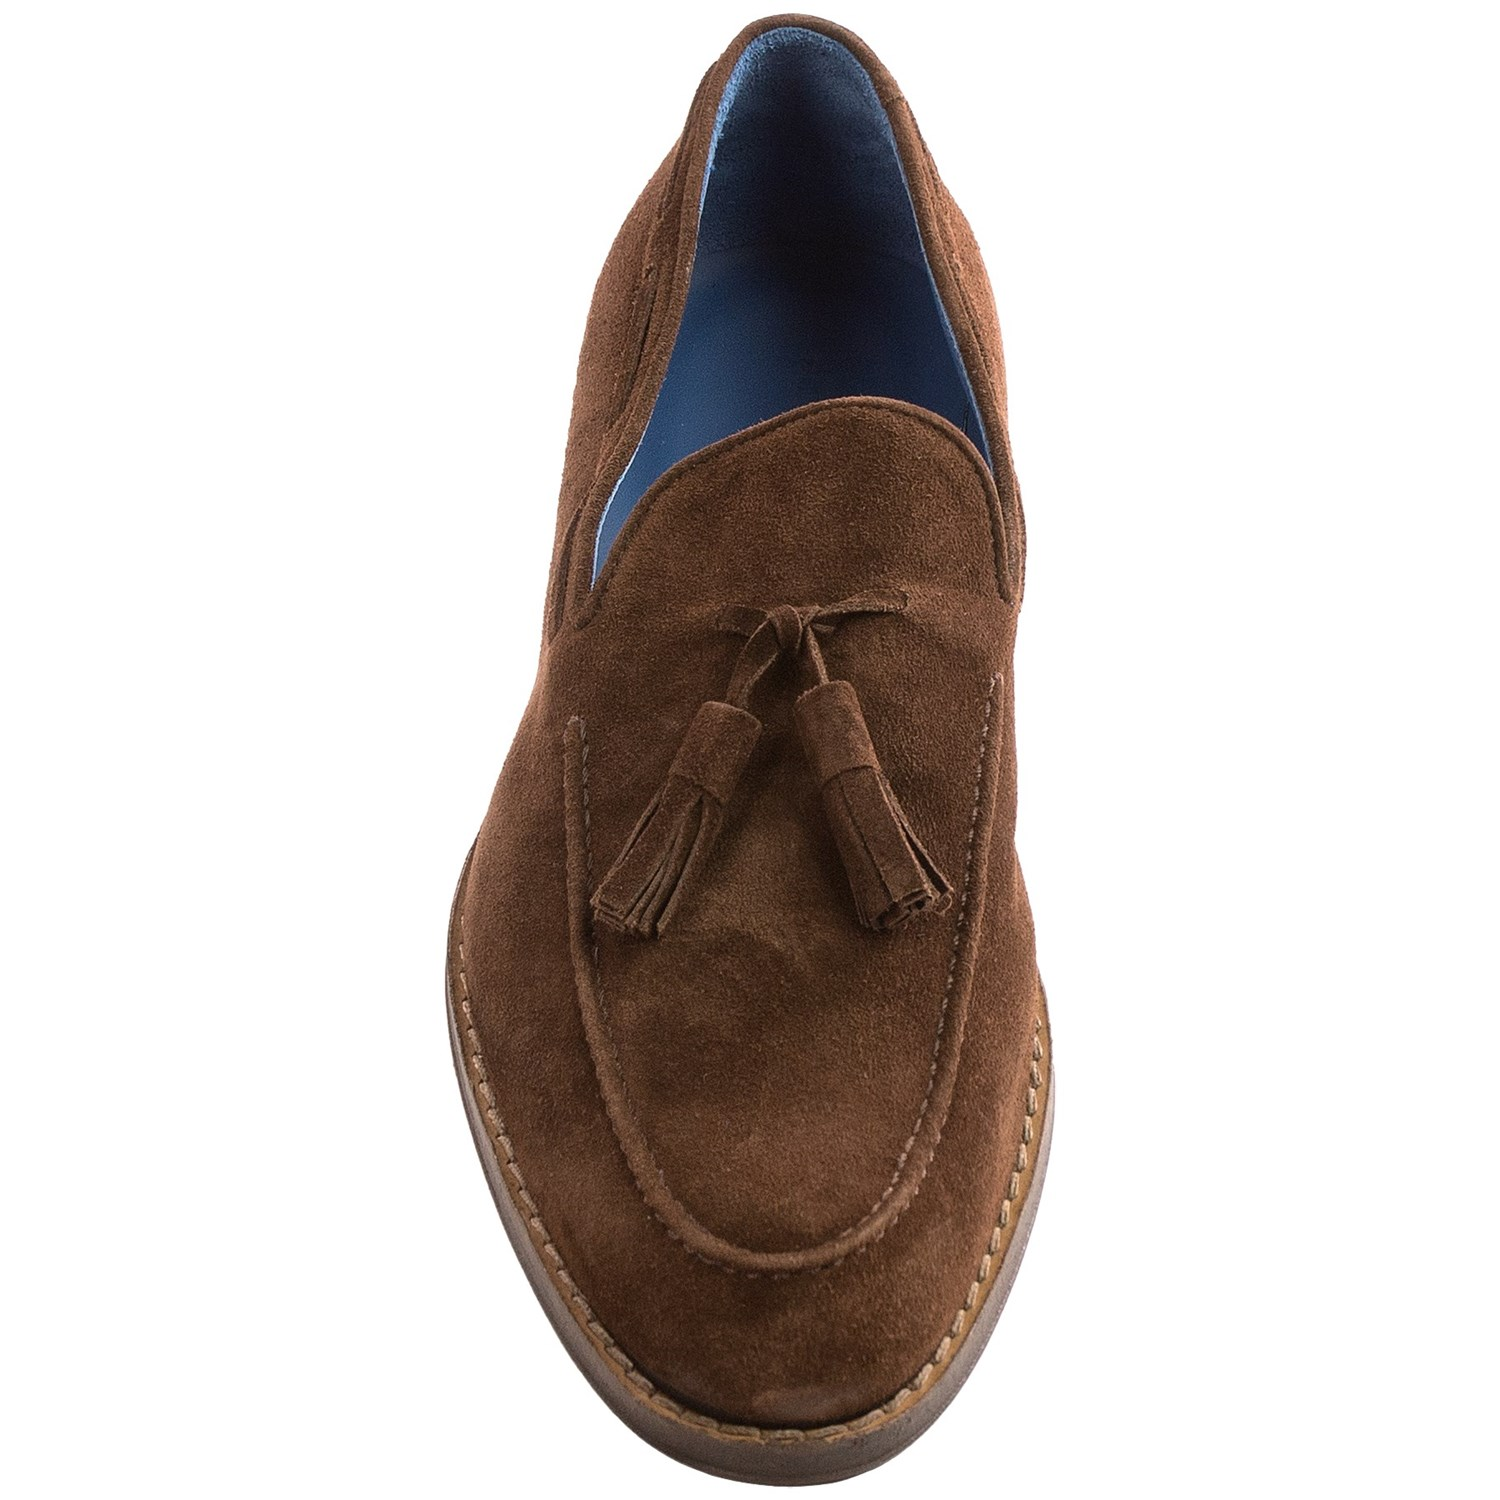 peter-millar-suede-tassel-loafers-for-men~a~9138x_2~1500.2